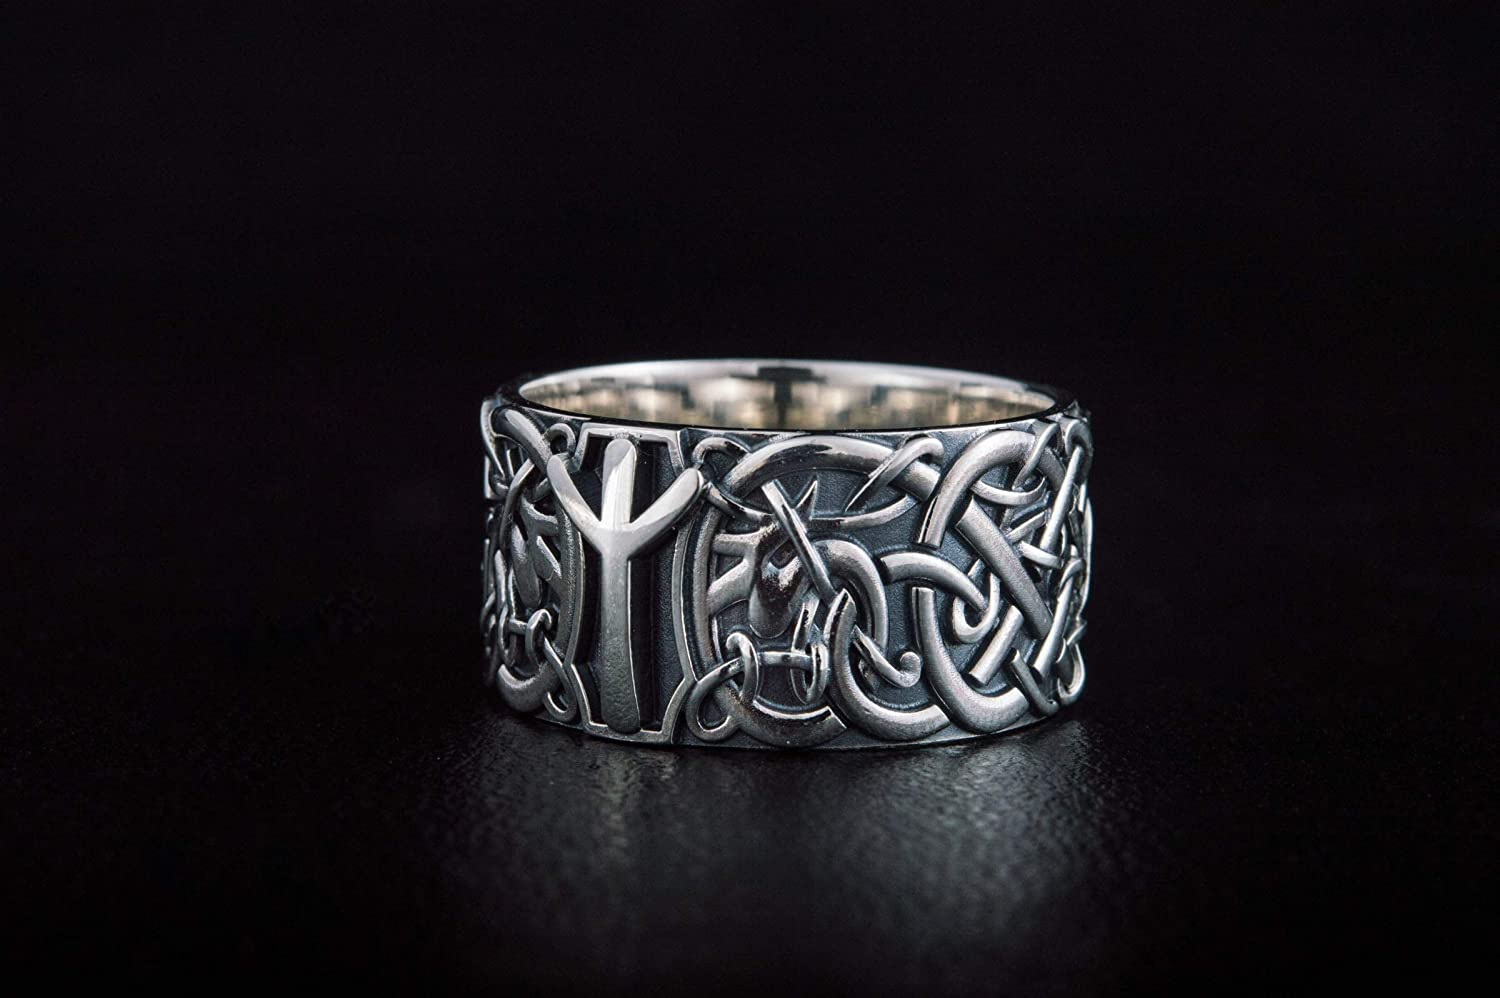 Runic Silver ring with runes silver ring Family amulet ring  Protection amulet Pinky ring silver index ring silver thumb ring Germanic ring